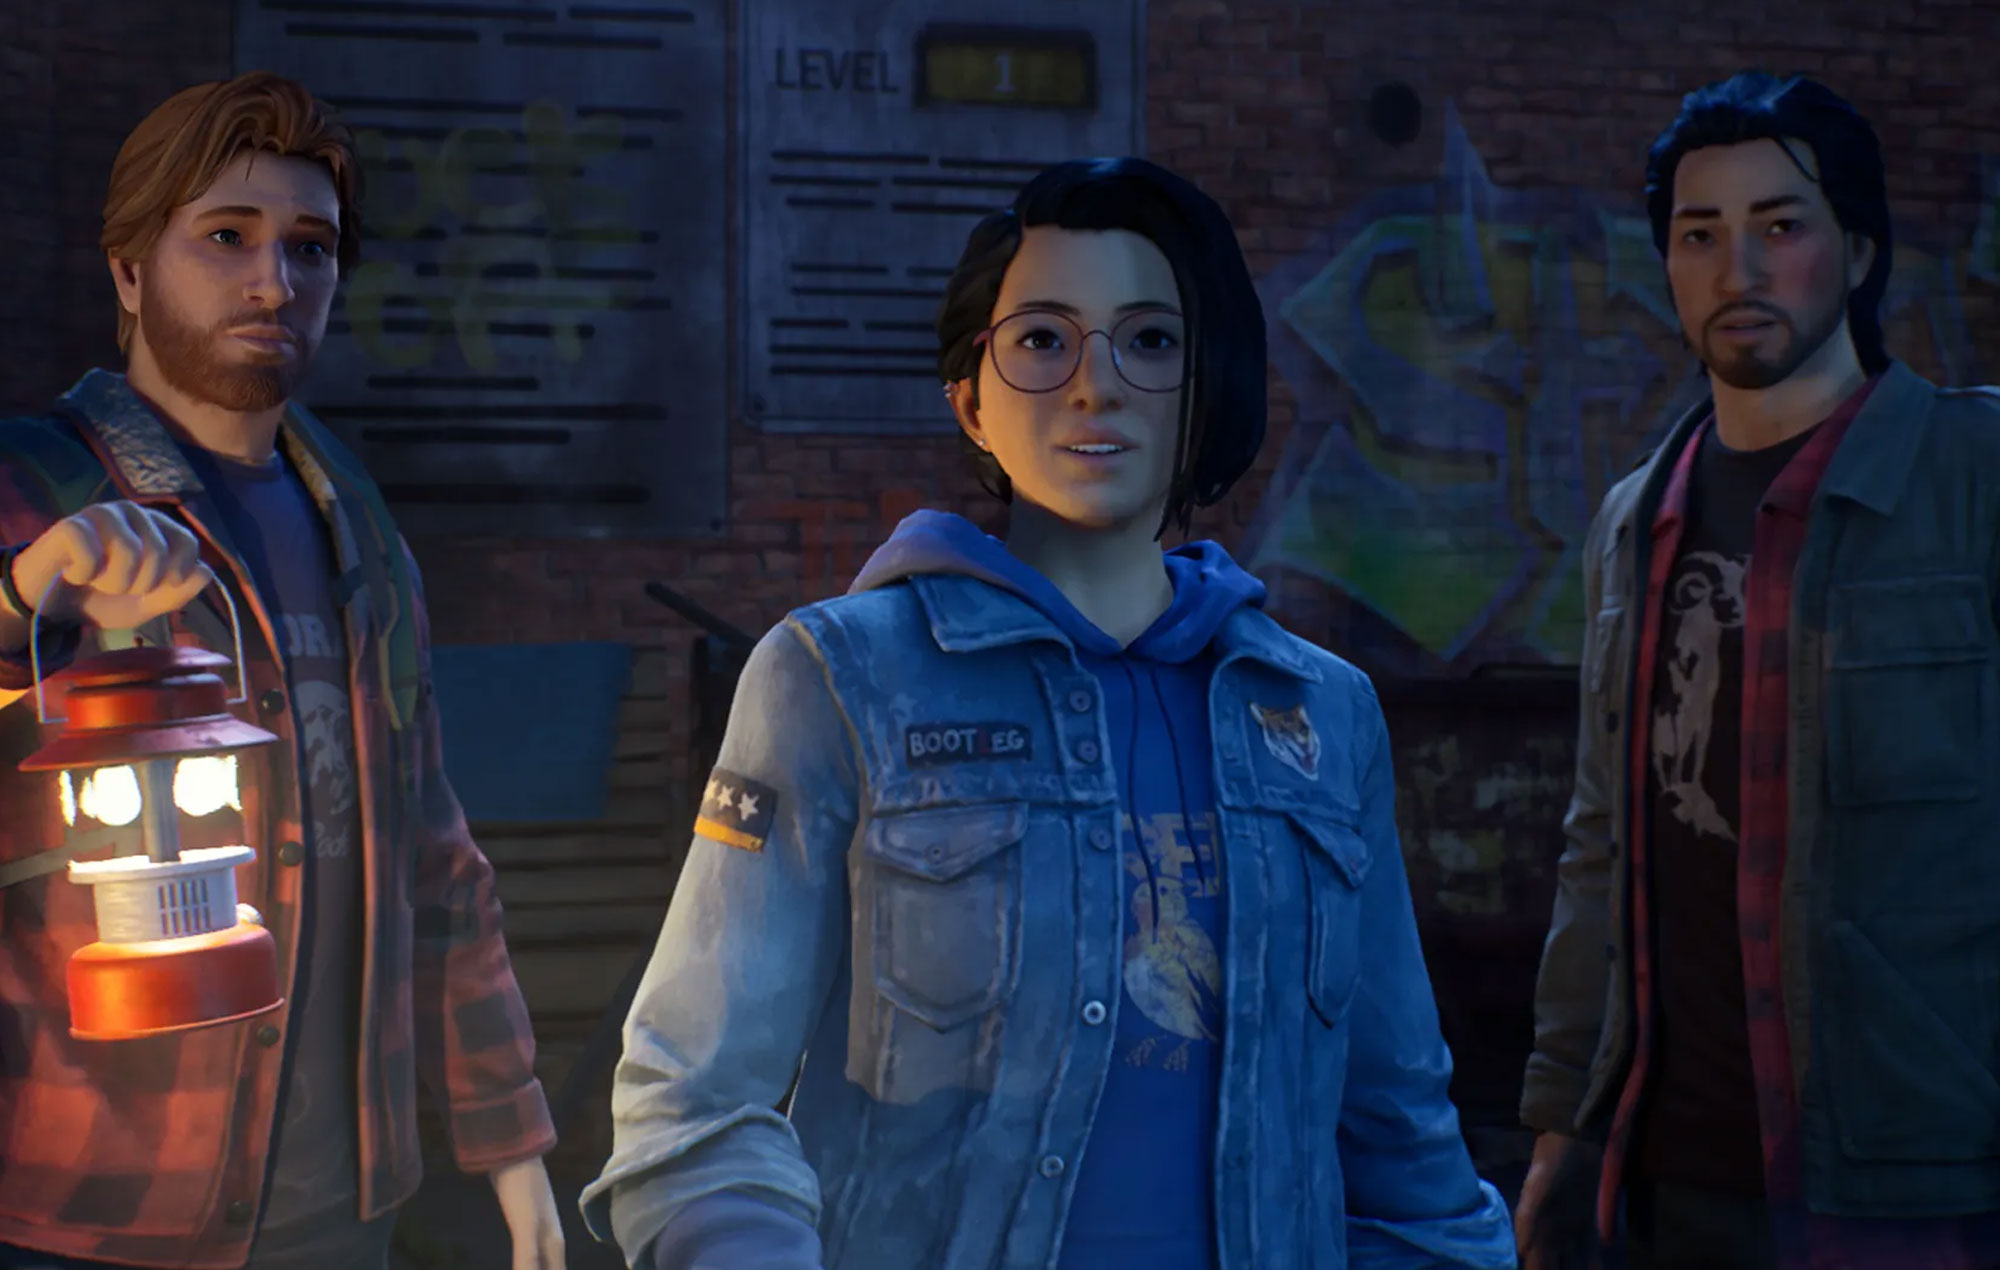 Life Is Strange: True Colors' streamers can let viewers vote on game choices